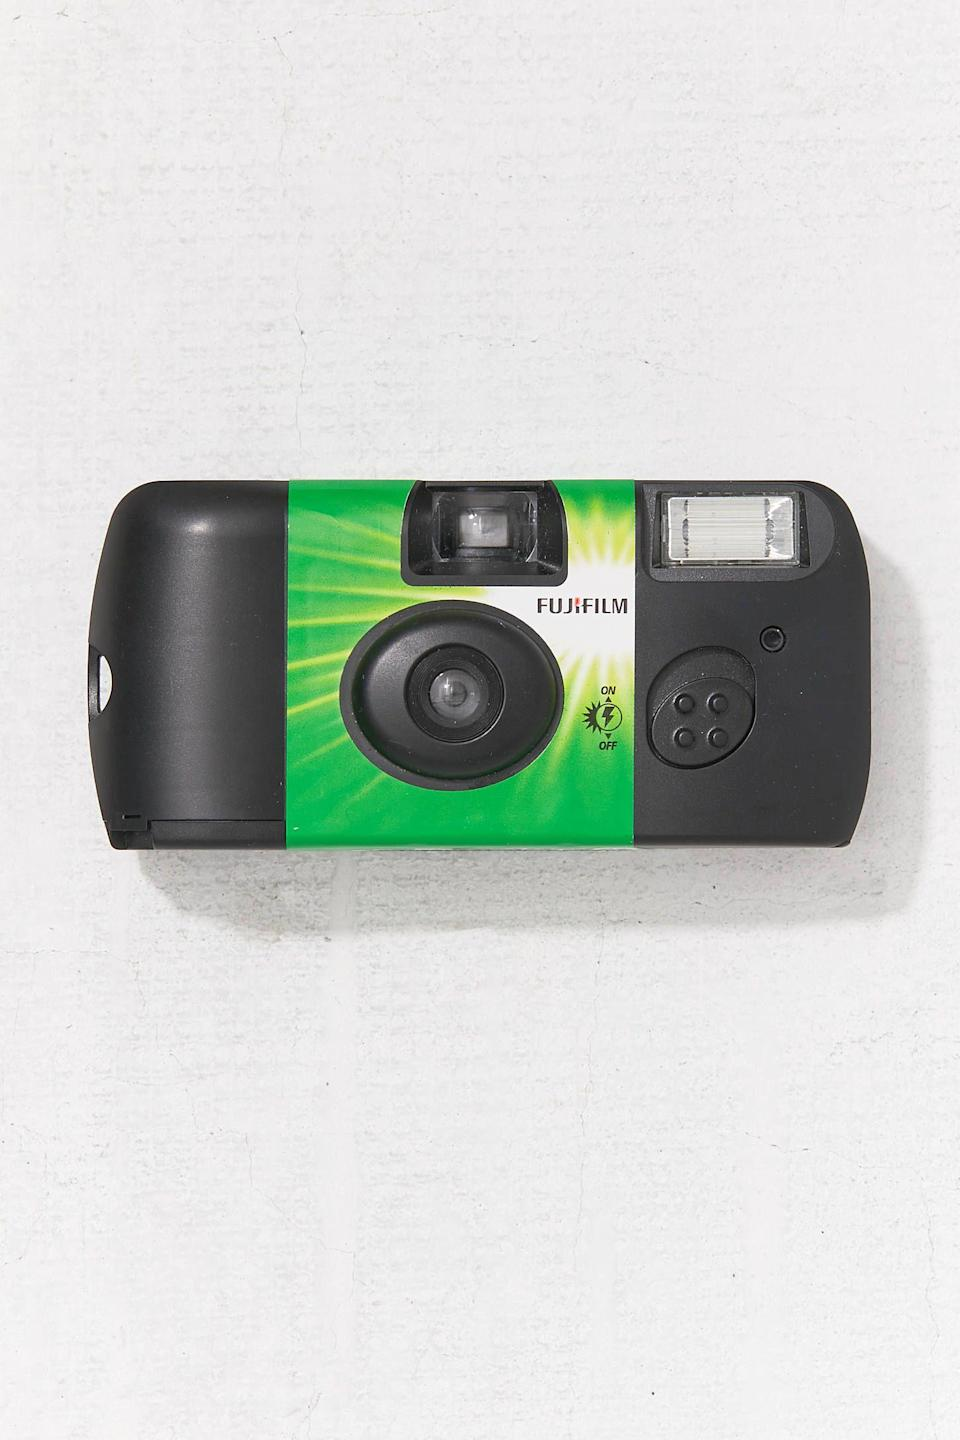 """<p><strong>Fujifilm</strong></p><p>urbanoutfitters.com</p><p><strong>$15.00</strong></p><p><a href=""""https://go.redirectingat.com?id=74968X1596630&url=https%3A%2F%2Fwww.urbanoutfitters.com%2Fshop%2Ffujifilm-fujicolor-quicksnap-flash-400-35mm-disposable-camera&sref=https%3A%2F%2Fwww.cosmopolitan.com%2Flifestyle%2Fg31710124%2Ftaurus-gift-guide%2F"""" rel=""""nofollow noopener"""" target=""""_blank"""" data-ylk=""""slk:SHOP NOW"""" class=""""link rapid-noclick-resp"""">SHOP NOW</a></p><p>A simple gift like a disposable camera will mean so much to your Taurus friend, who loves capturing their favorite moments and looking back on the memories.</p>"""